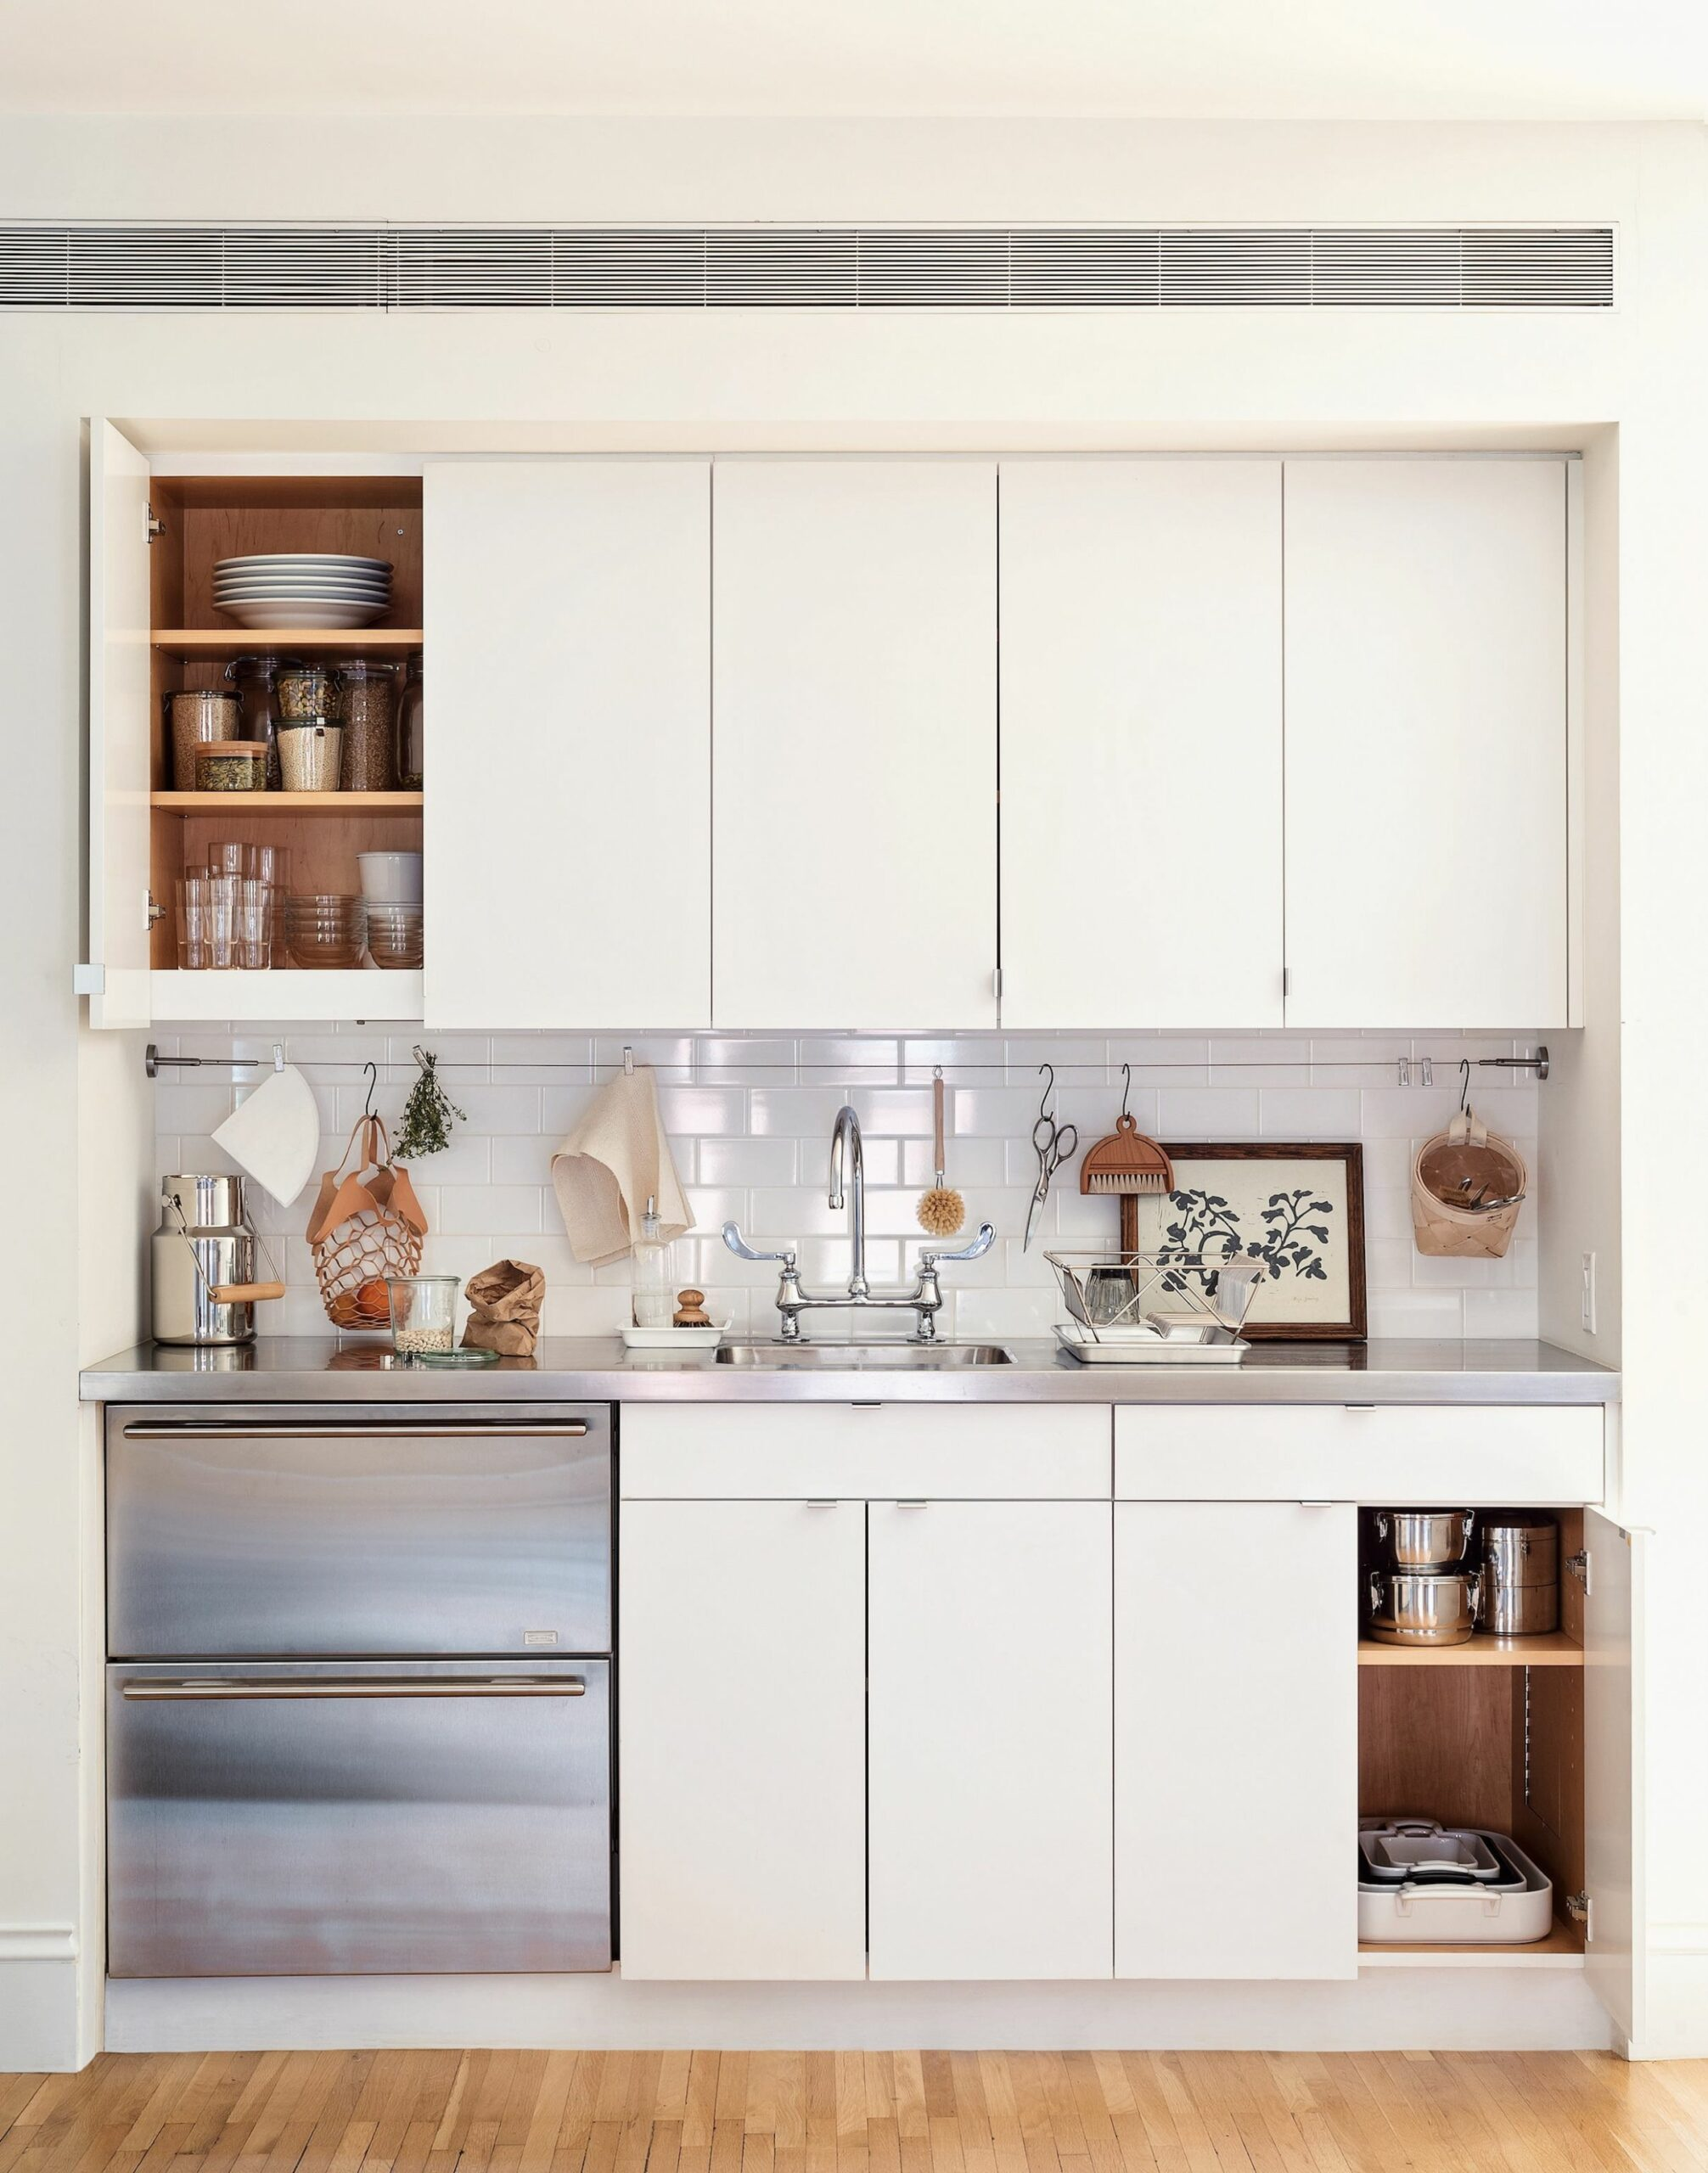 12 Space-Saving Ideas to Steal from a Brooklyn Kitchen, Ikea Hack ..